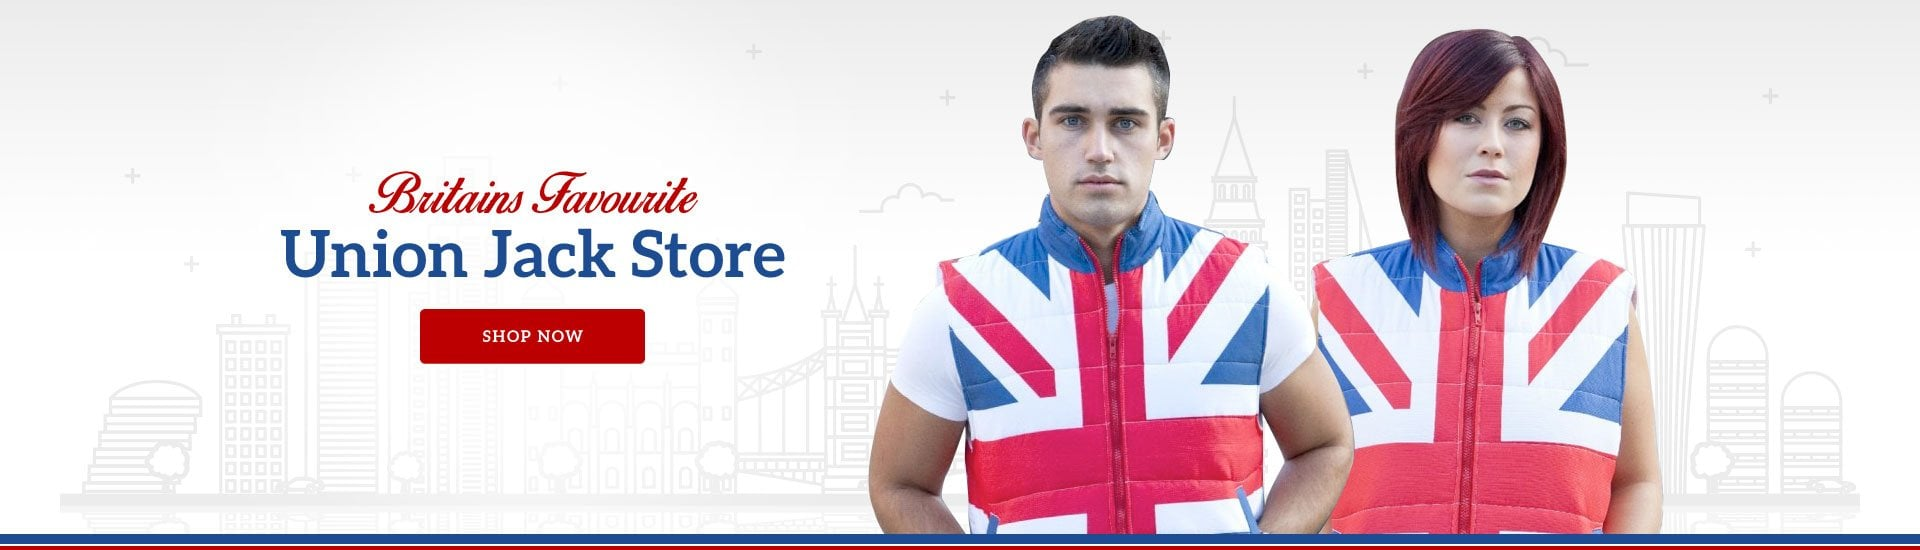 Britain's Favorite Union Jack Store